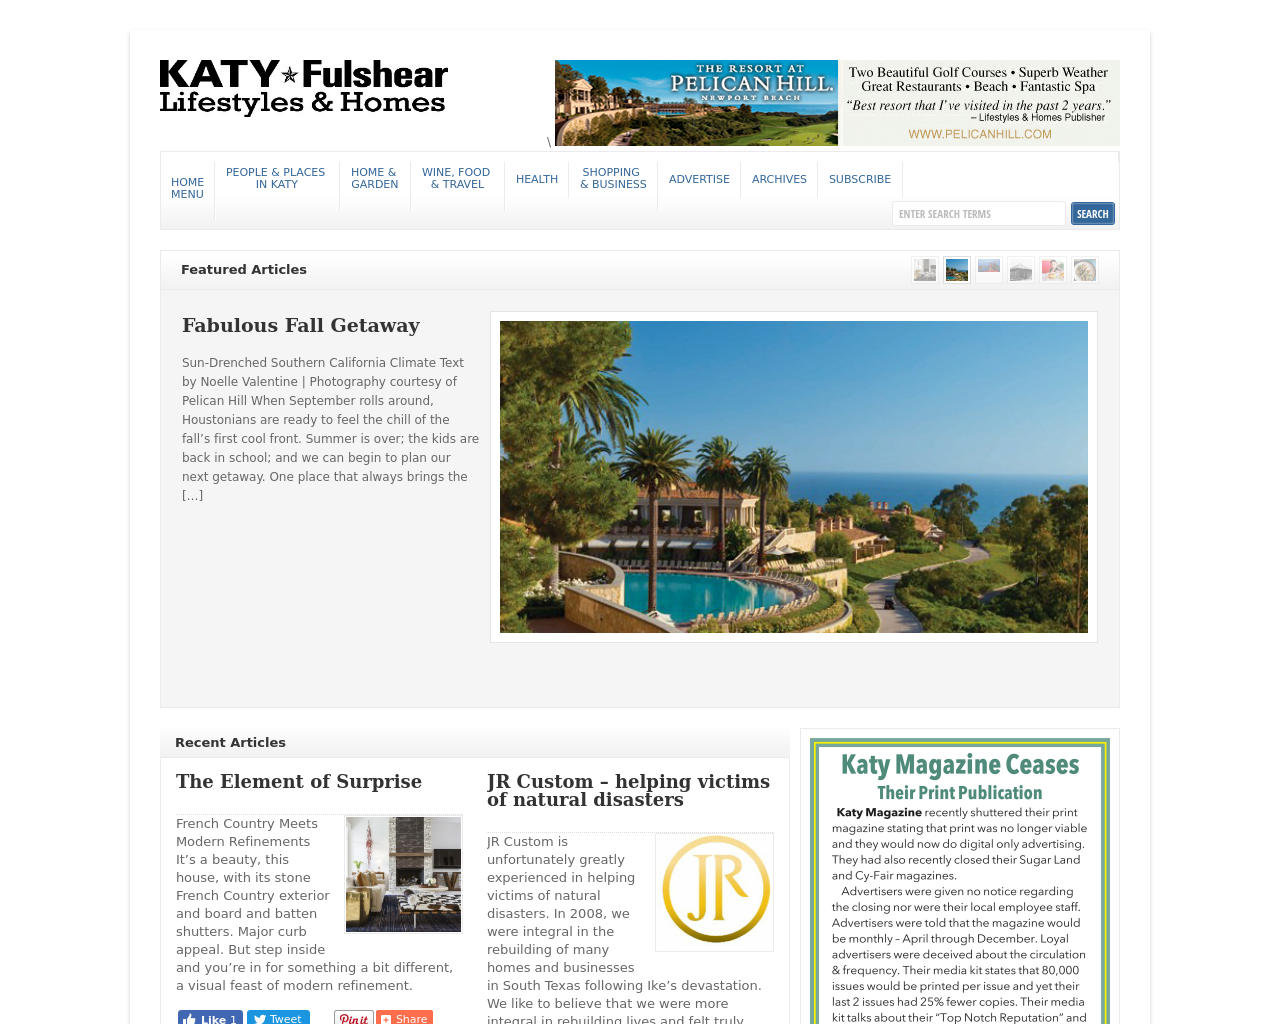 Katy-Lifestyles-&-Homes-Advertising-Reviews-Pricing